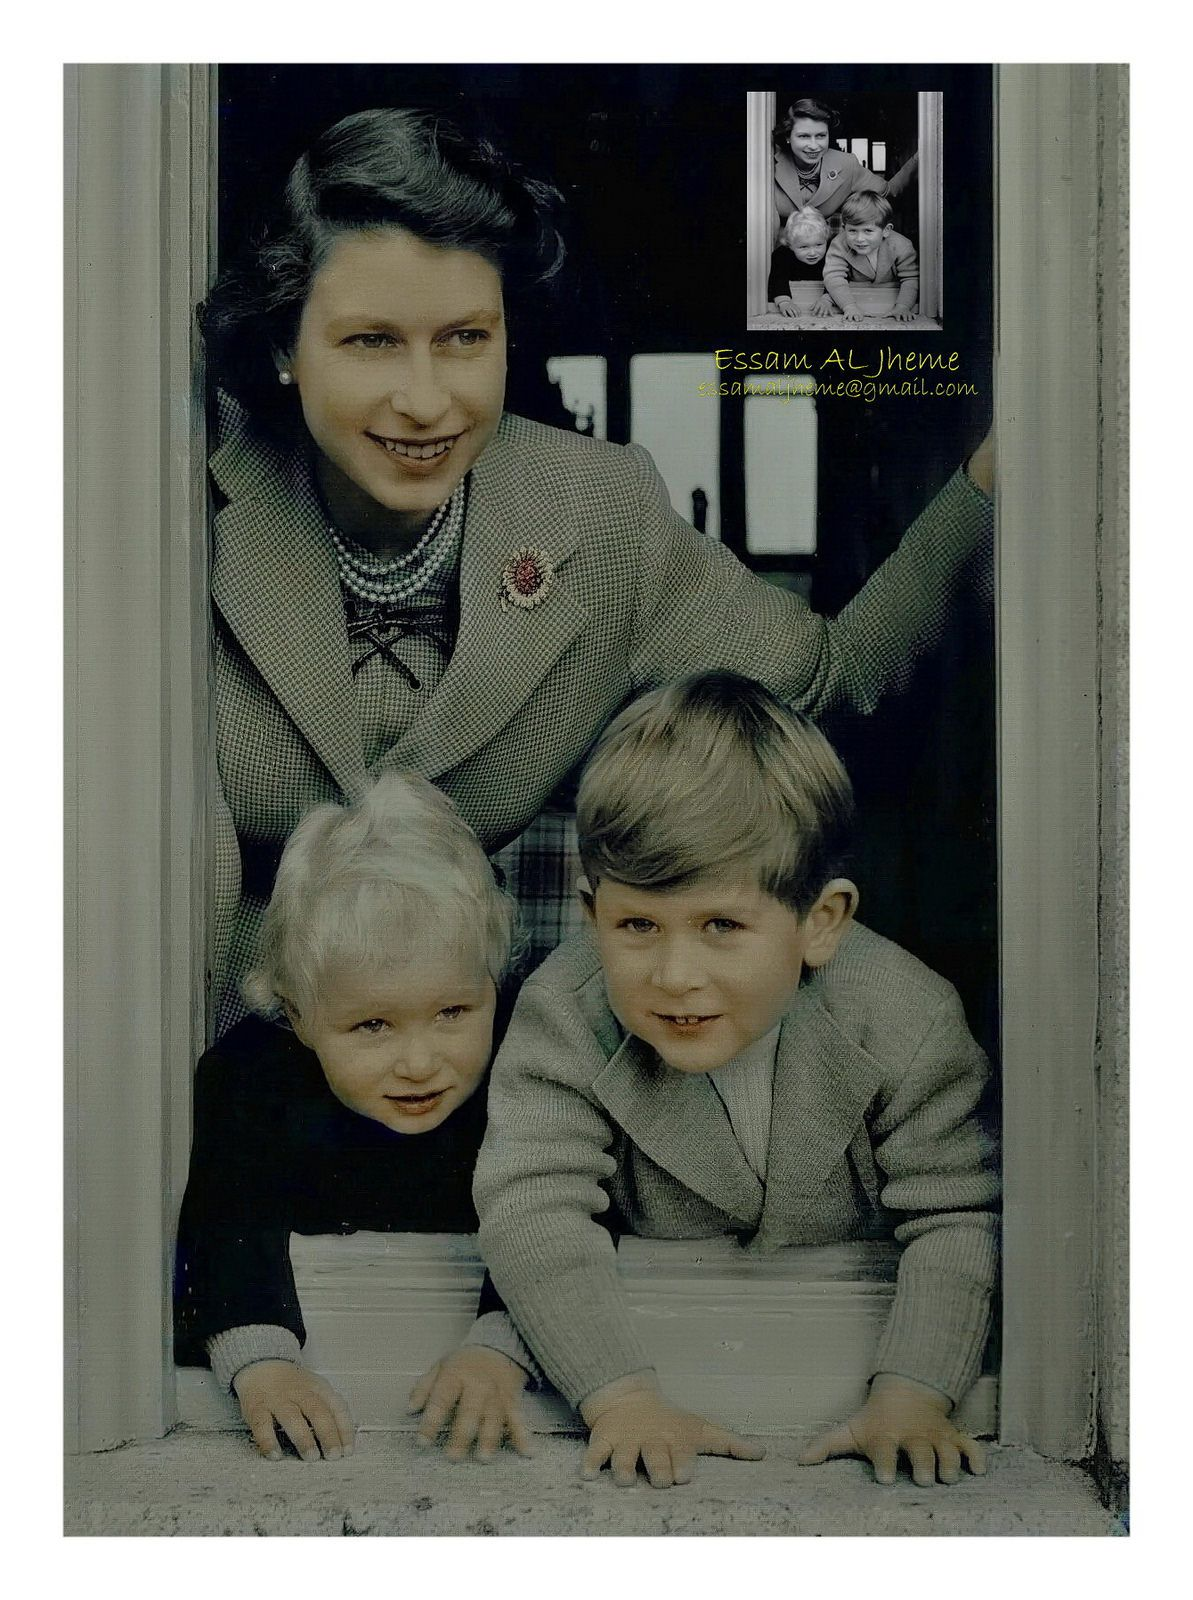 Prince Charles Shares Home Video with Queen Elizabeth from